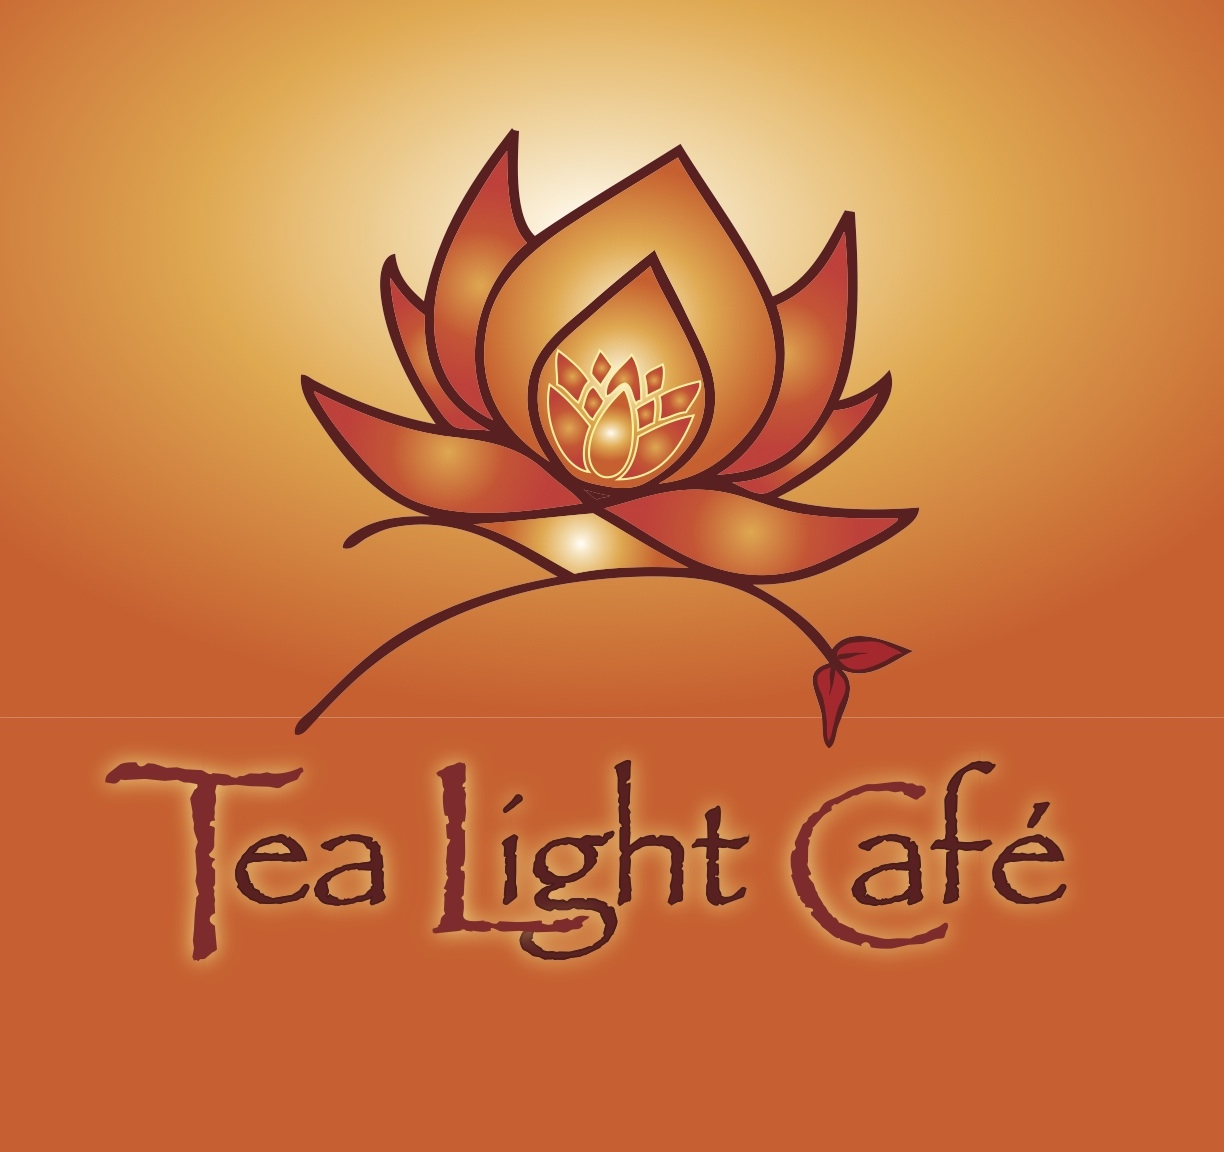 Tea Light Cafe